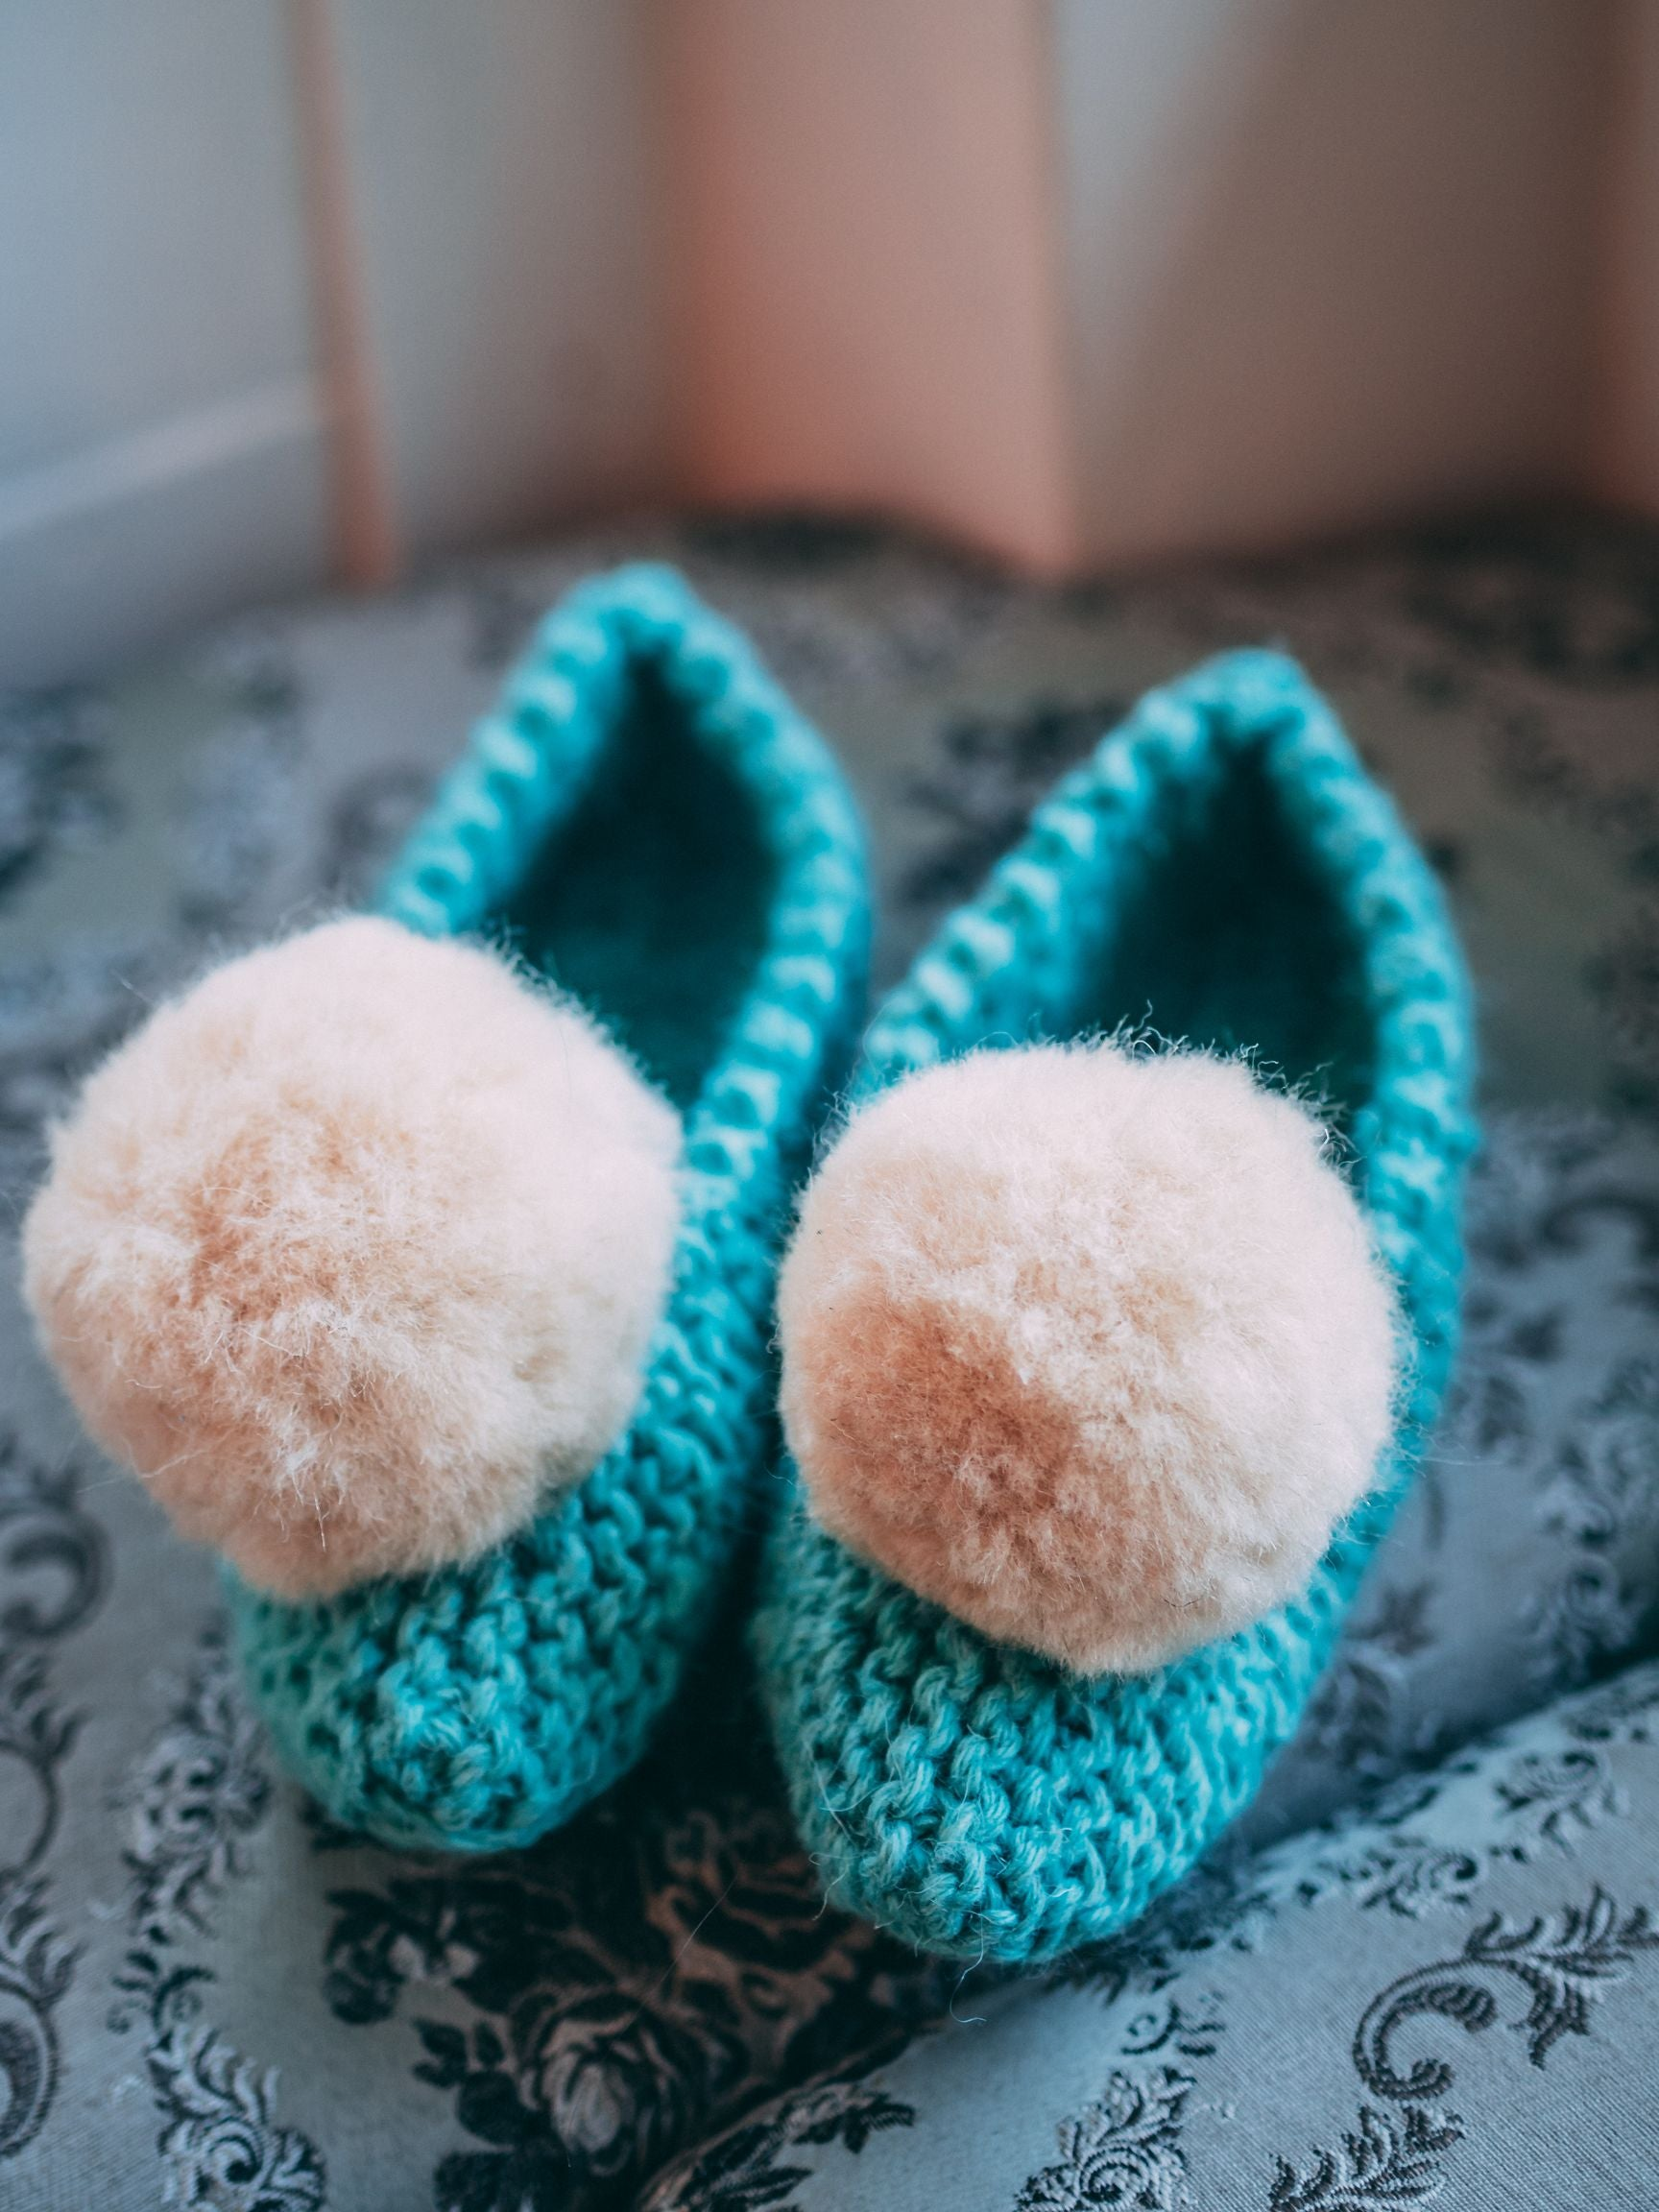 Wool crochet slippers (with non-skid soles), turquoise